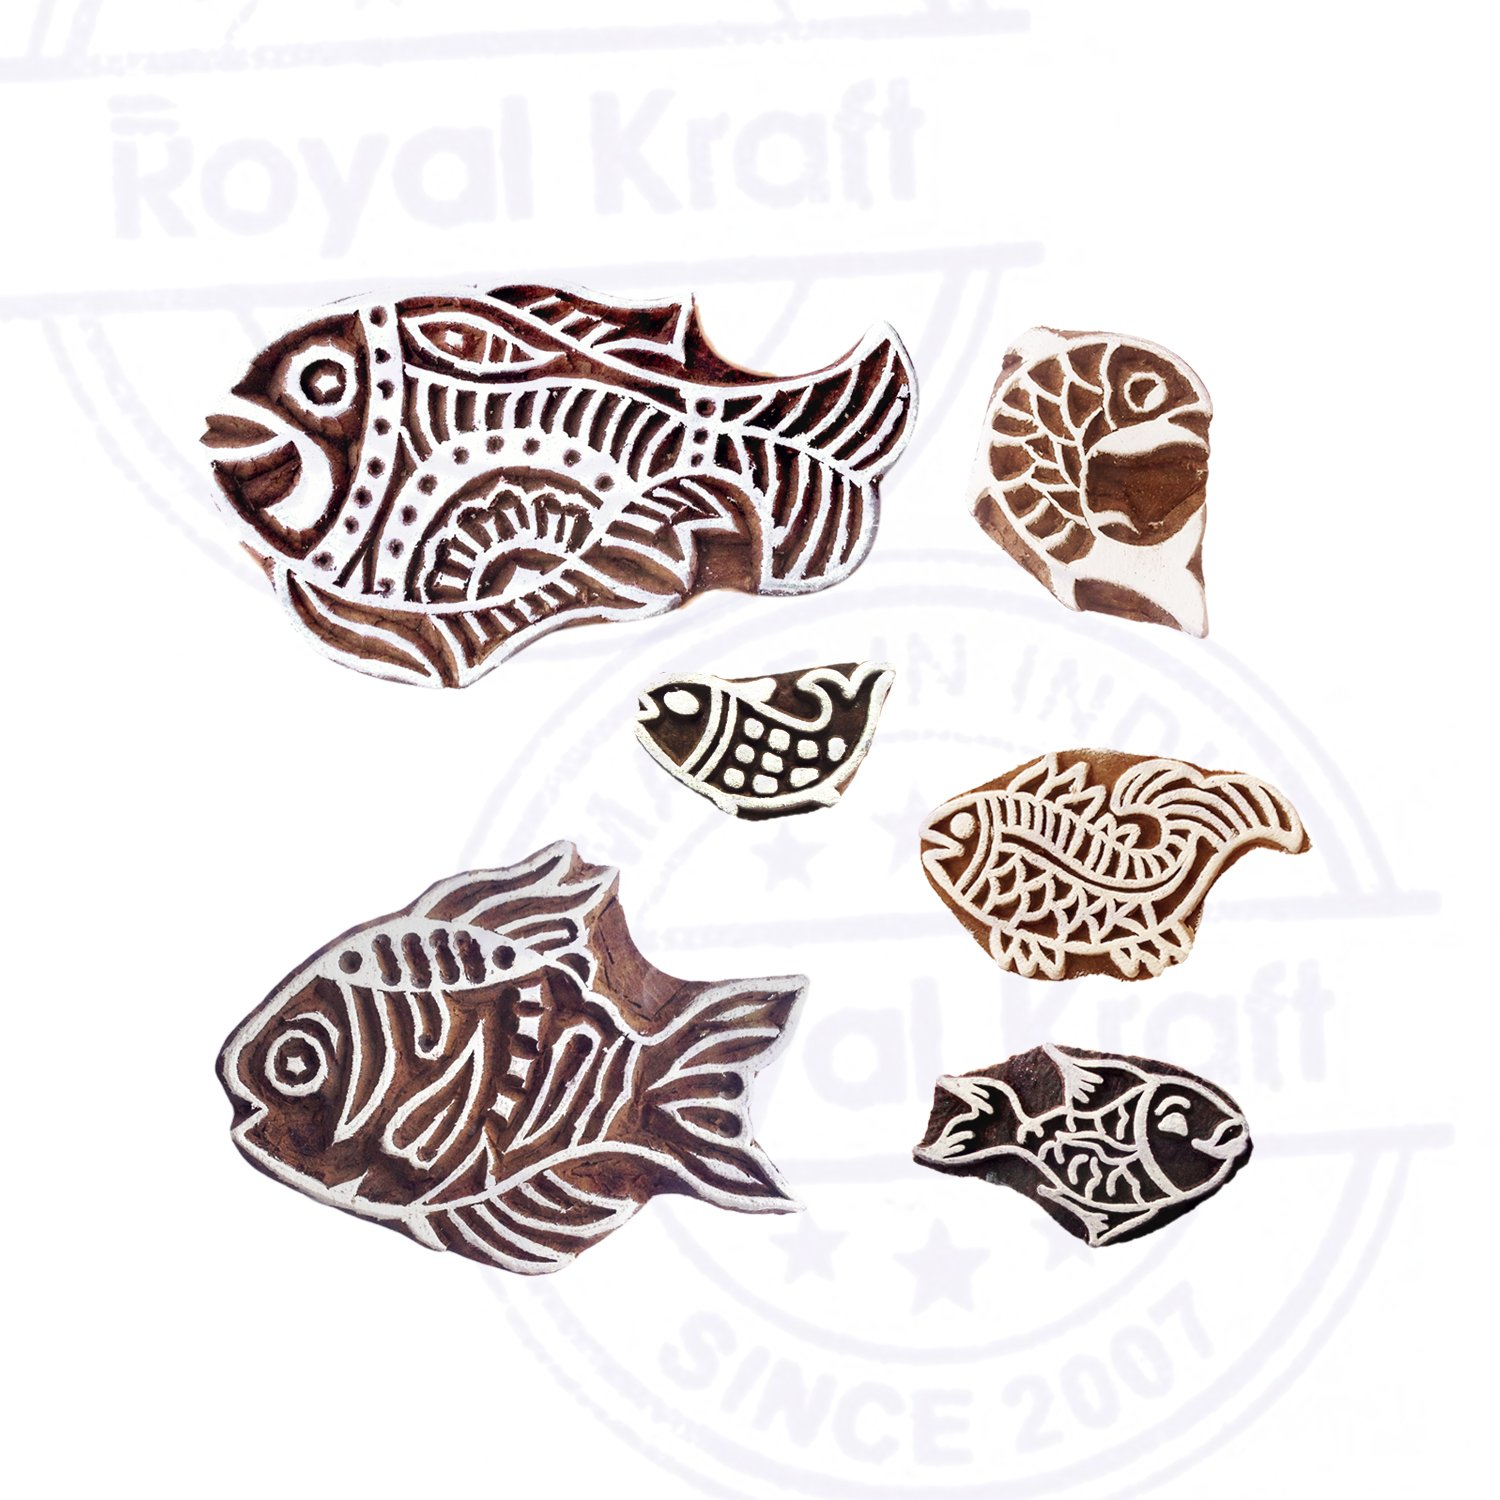 Pottery Printing Blocks Retro Fish Pattern Wooden Stamps Set of 6